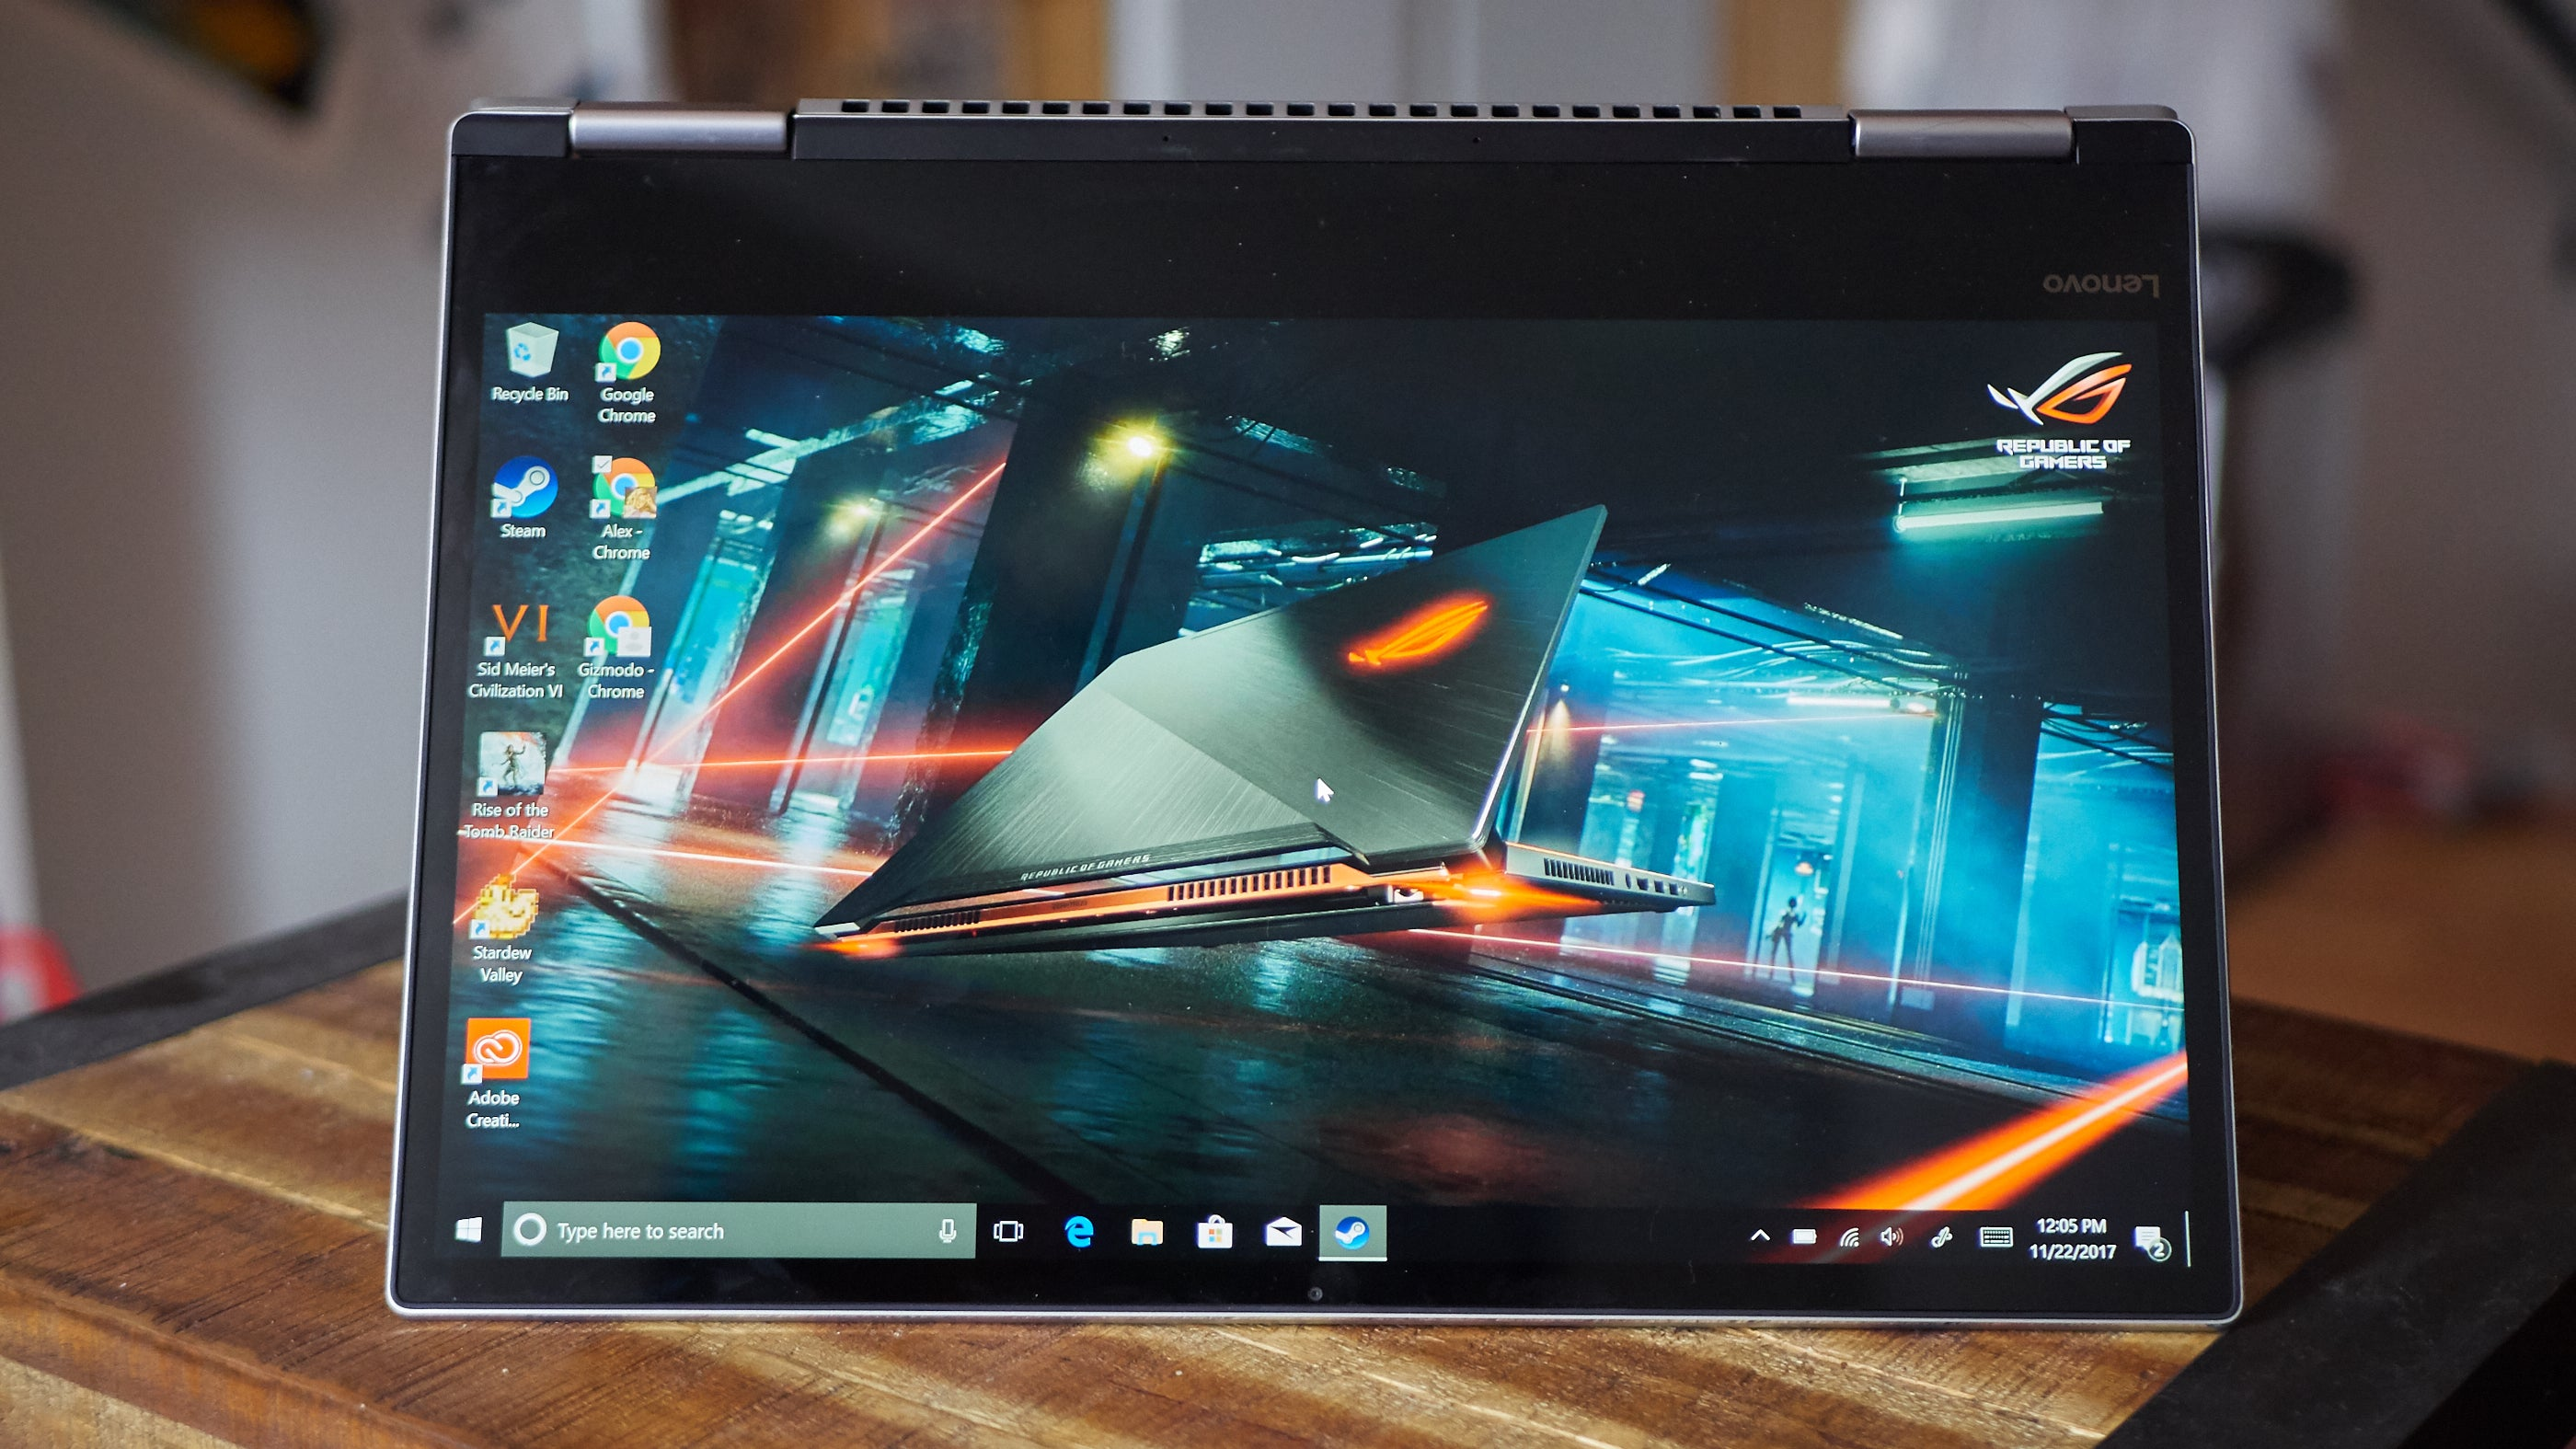 Lenovo's Yoga 720 Is a Lot of Laptop for Not a Lot of Money